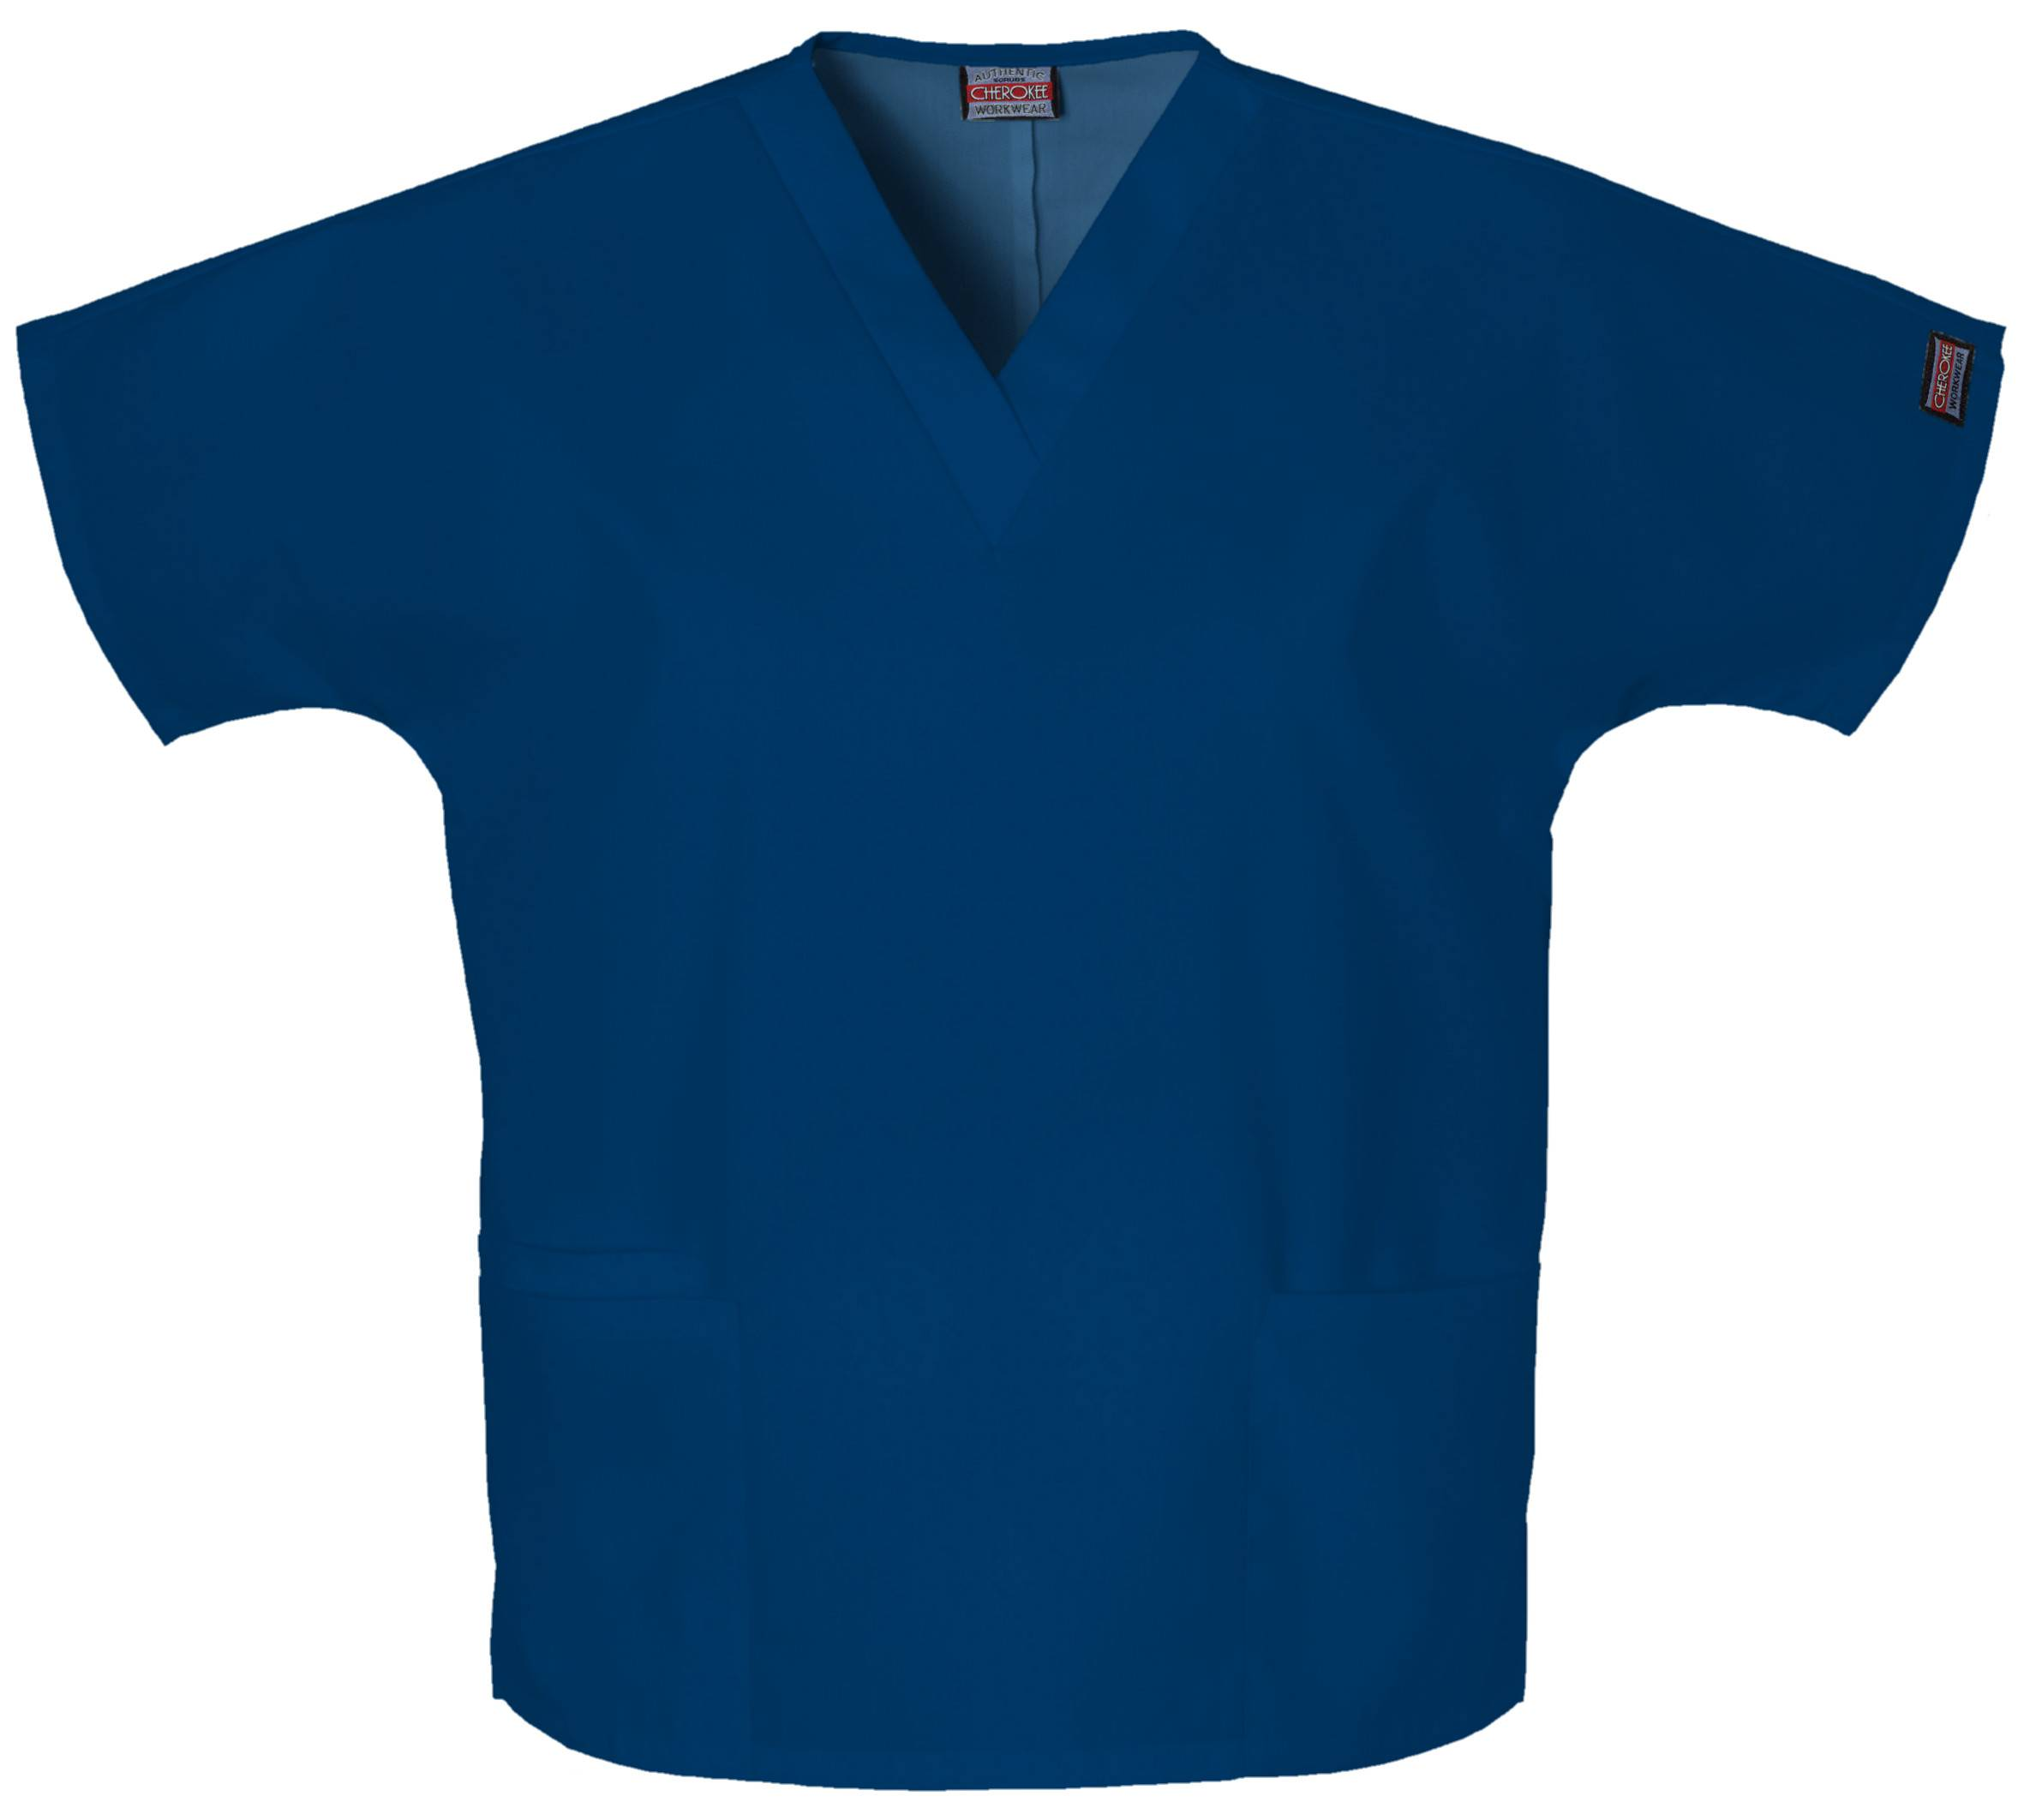 neck scrubs blue ceil in ebay available color colors unisex pocket v itm full top sivvan ceilings